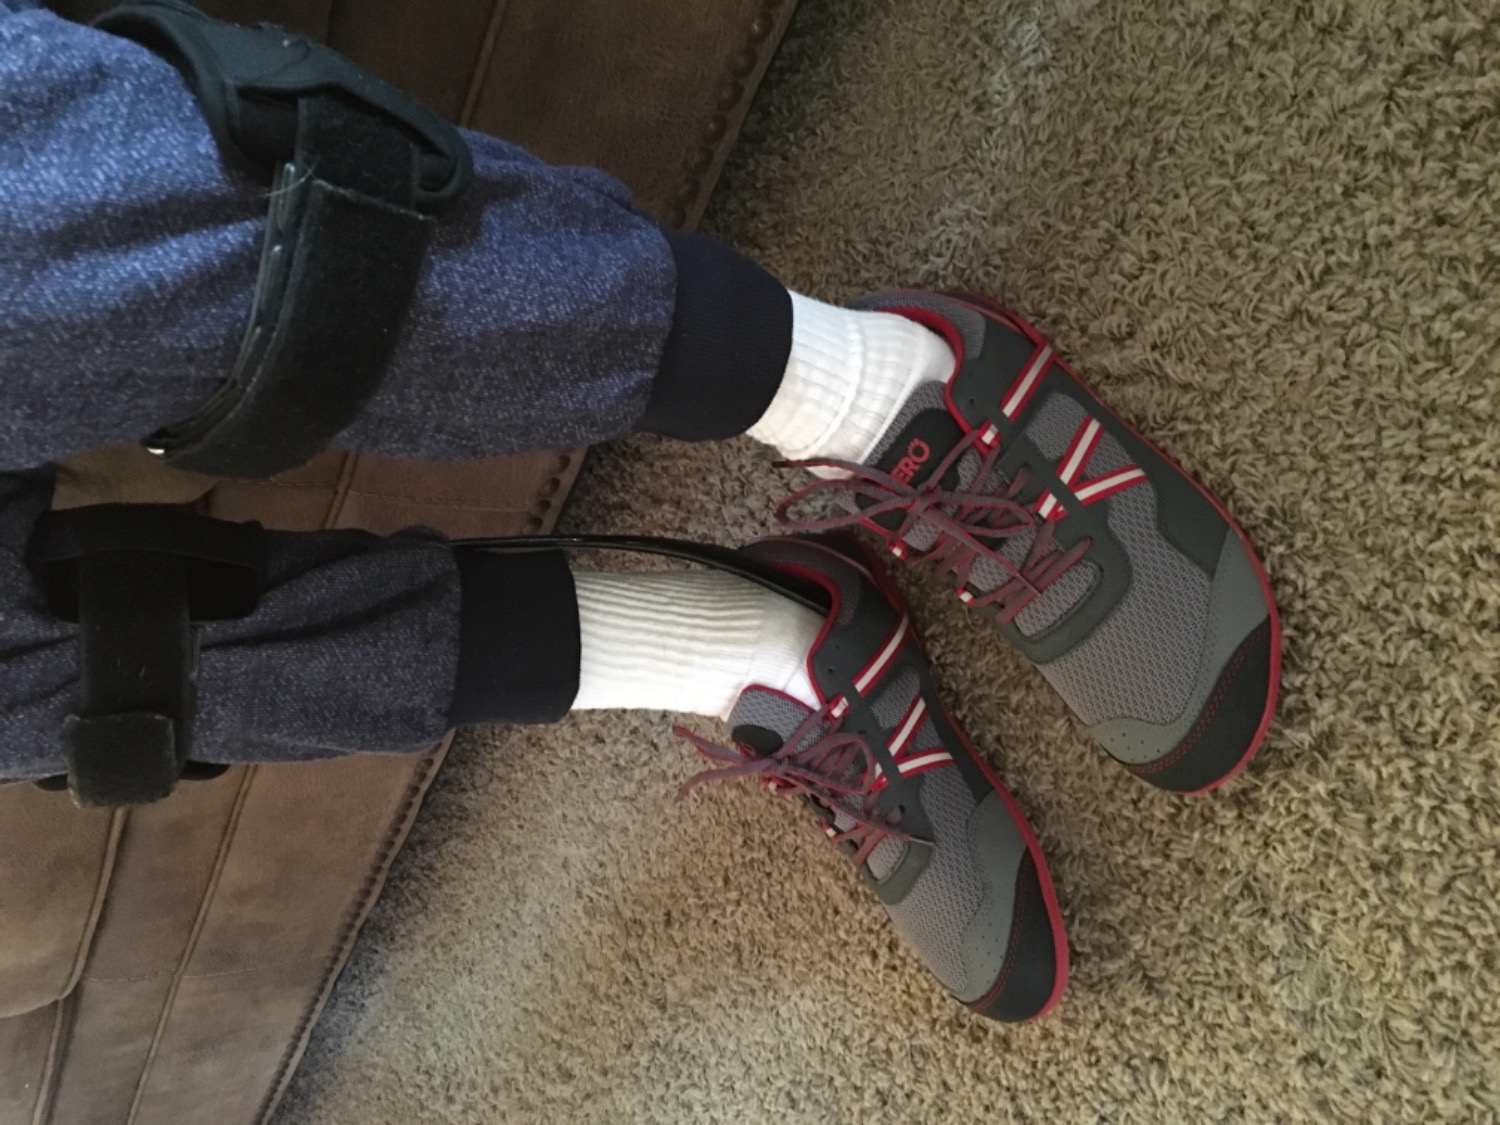 986dccf5fa9 We purchased these shoes for my husband who has ALS and needed a  lightweight shoe that would fit his AFOs We searched all over since he  needed more room for ...